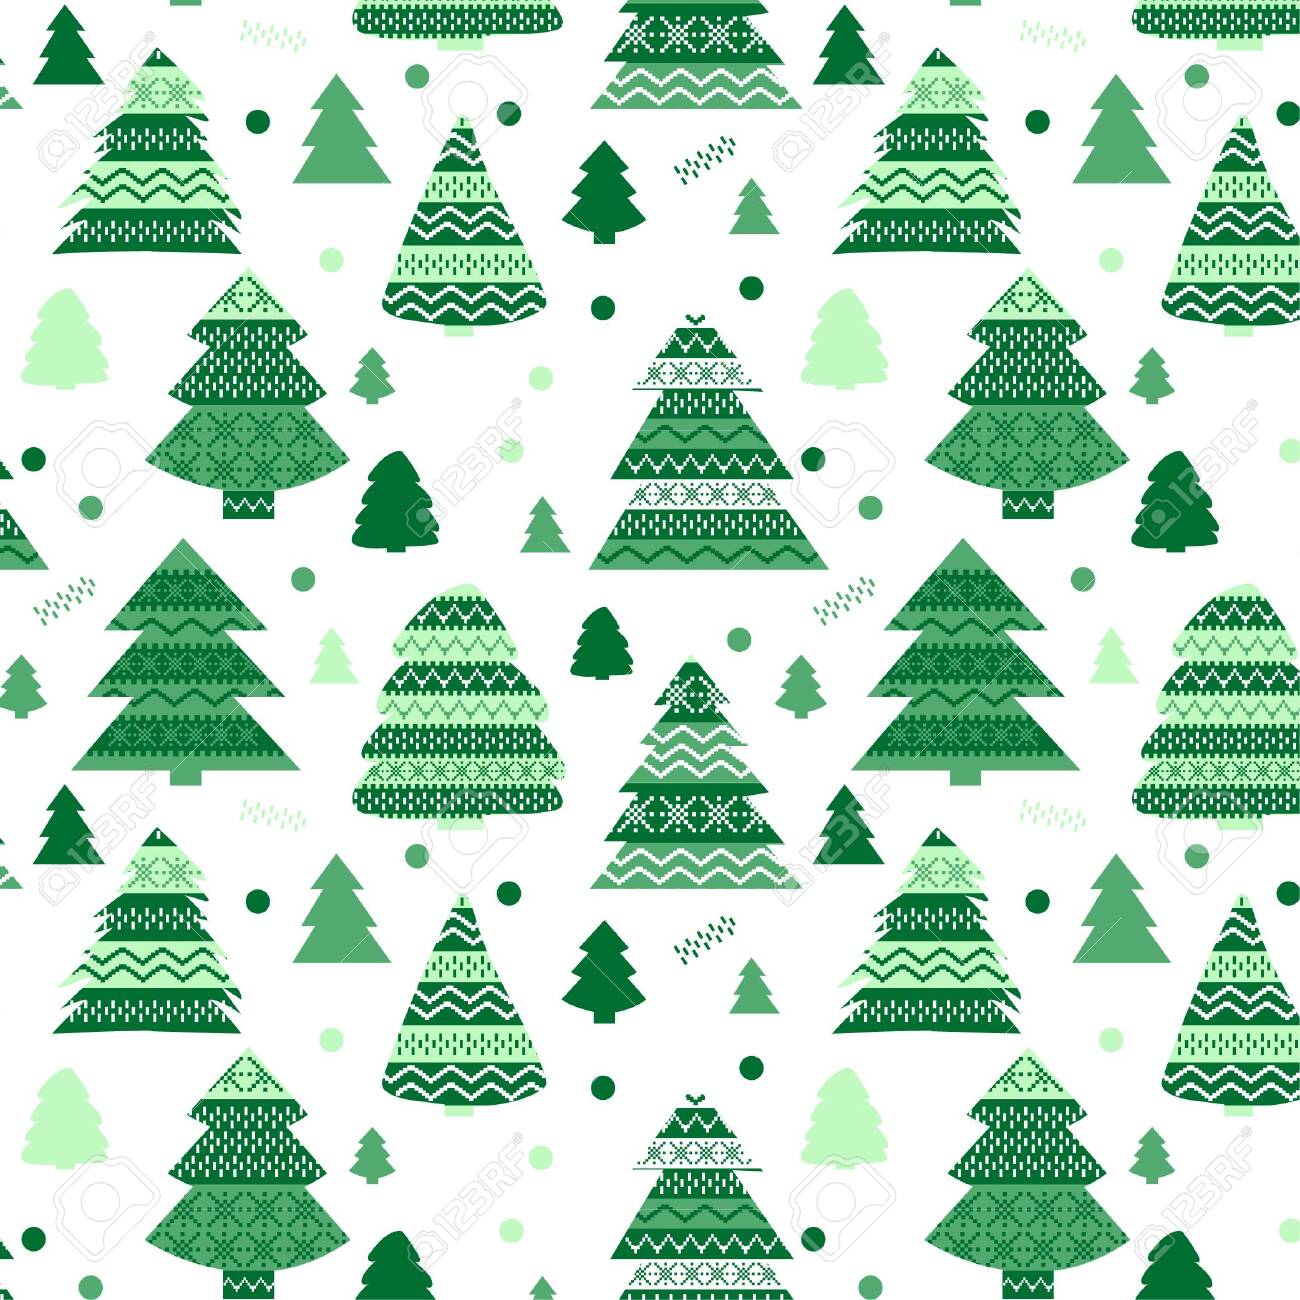 Cute Christmas pattern with Christmas motifs - 132028681